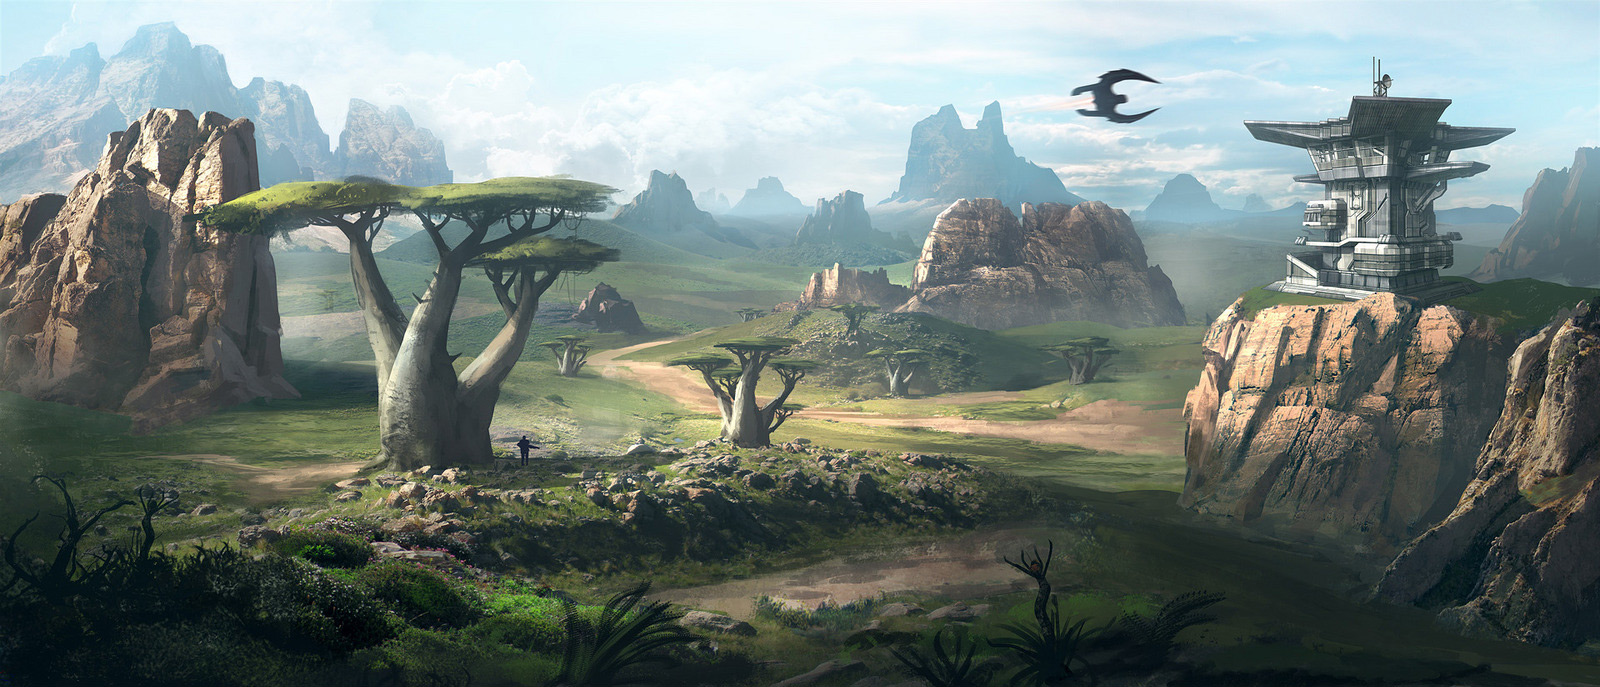 Concept Art: Environment Concept - 2D Digital, Concept art ...